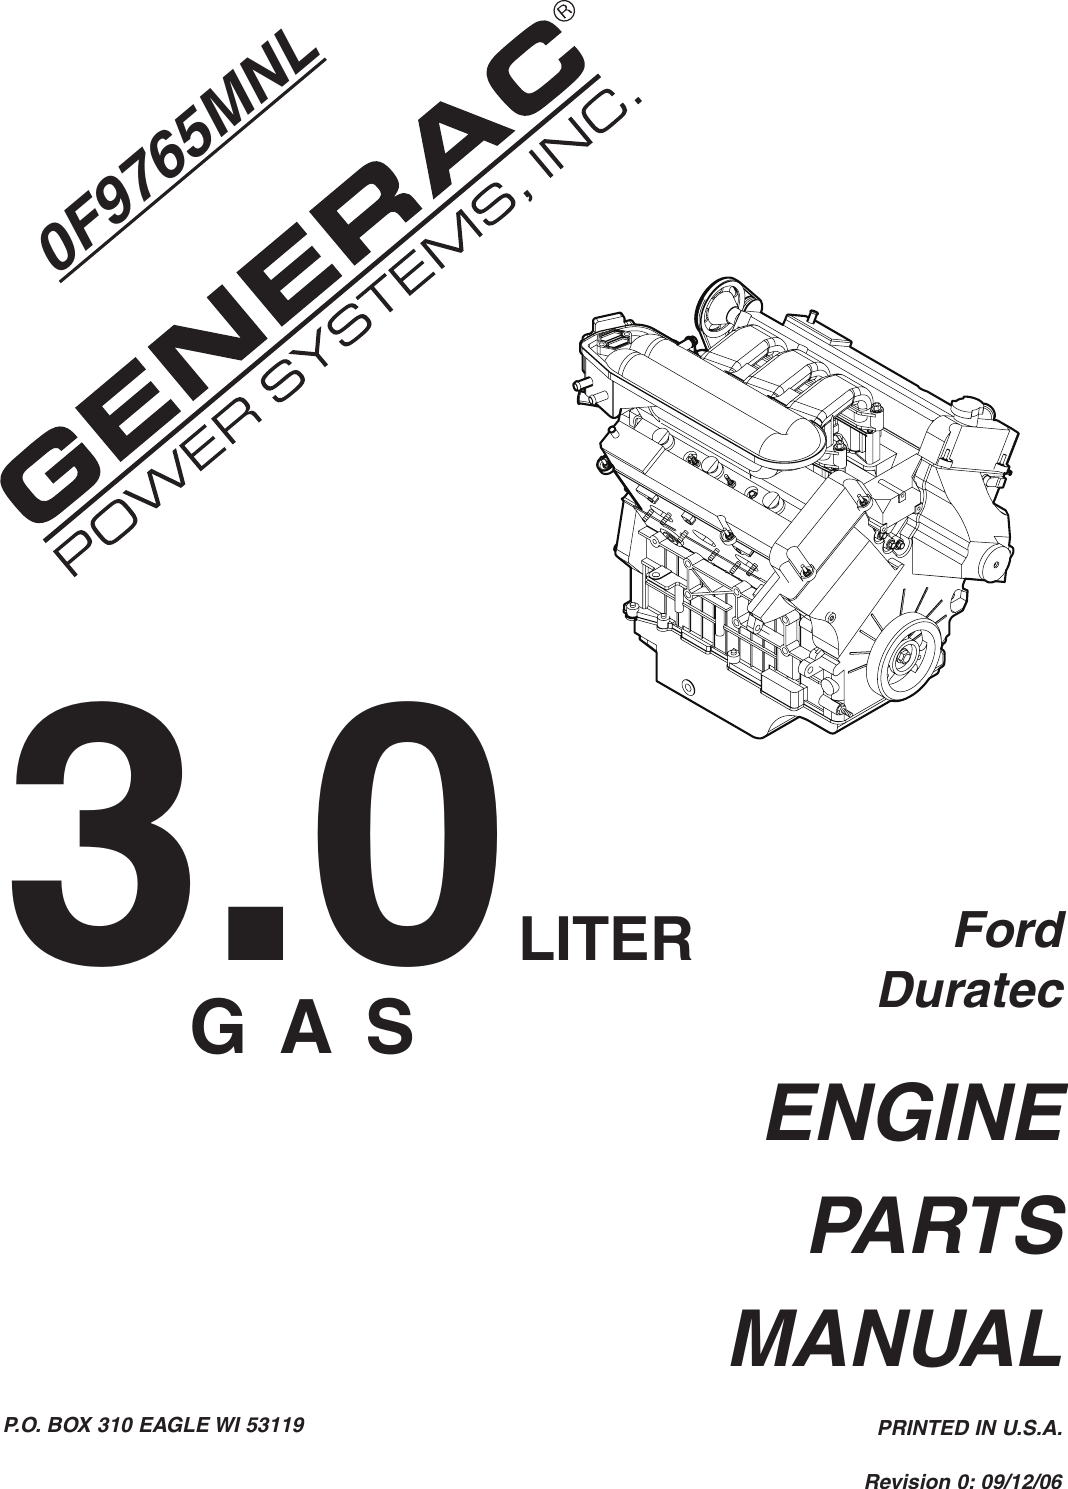 Generac Power Systems Ford Duratec 0F9765Mnl Users Manual